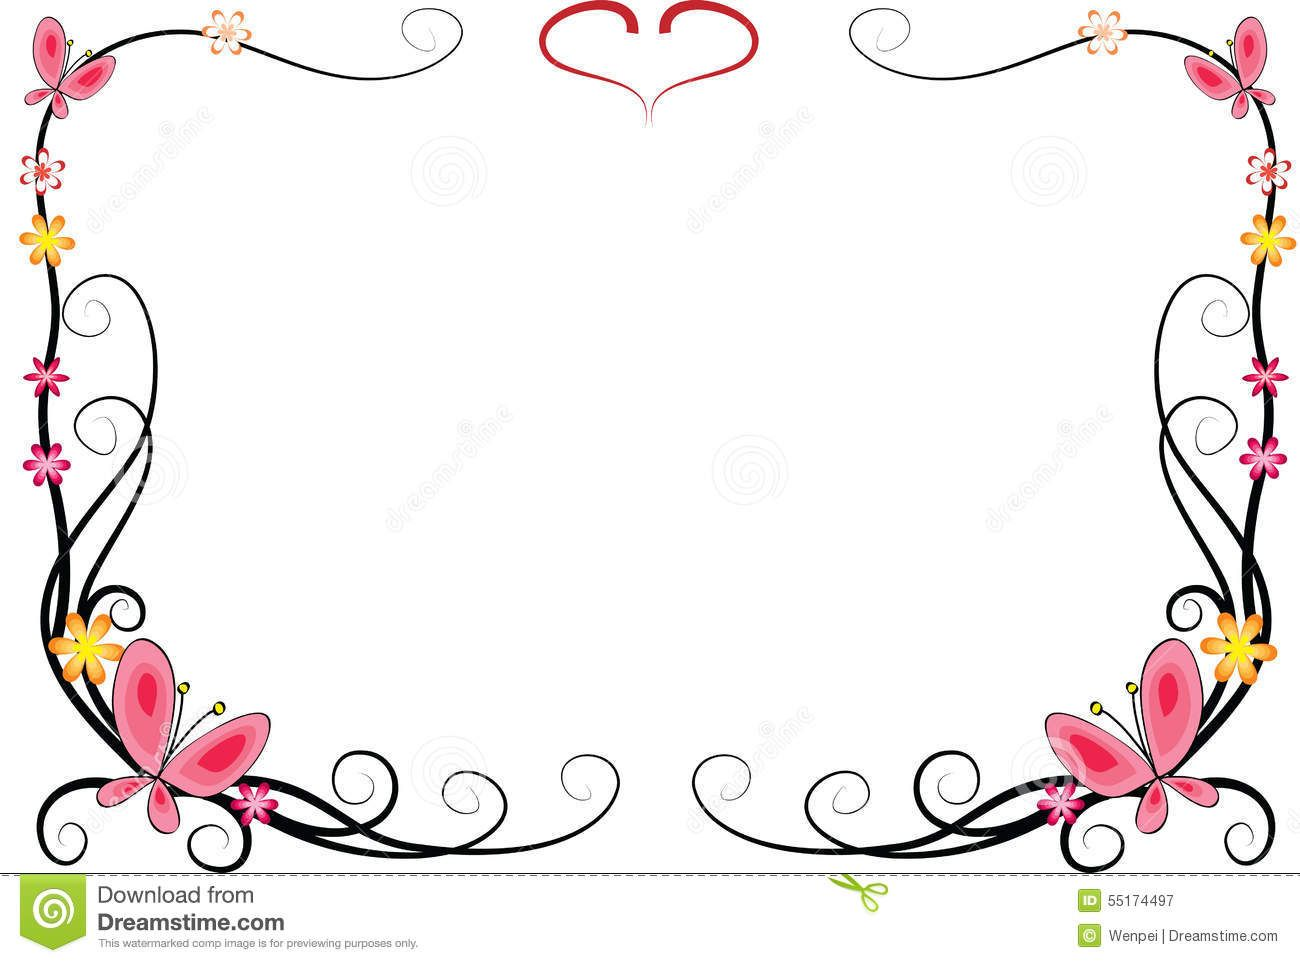 Fleurs vector drawing flowers. Butterfly clipart picture frame